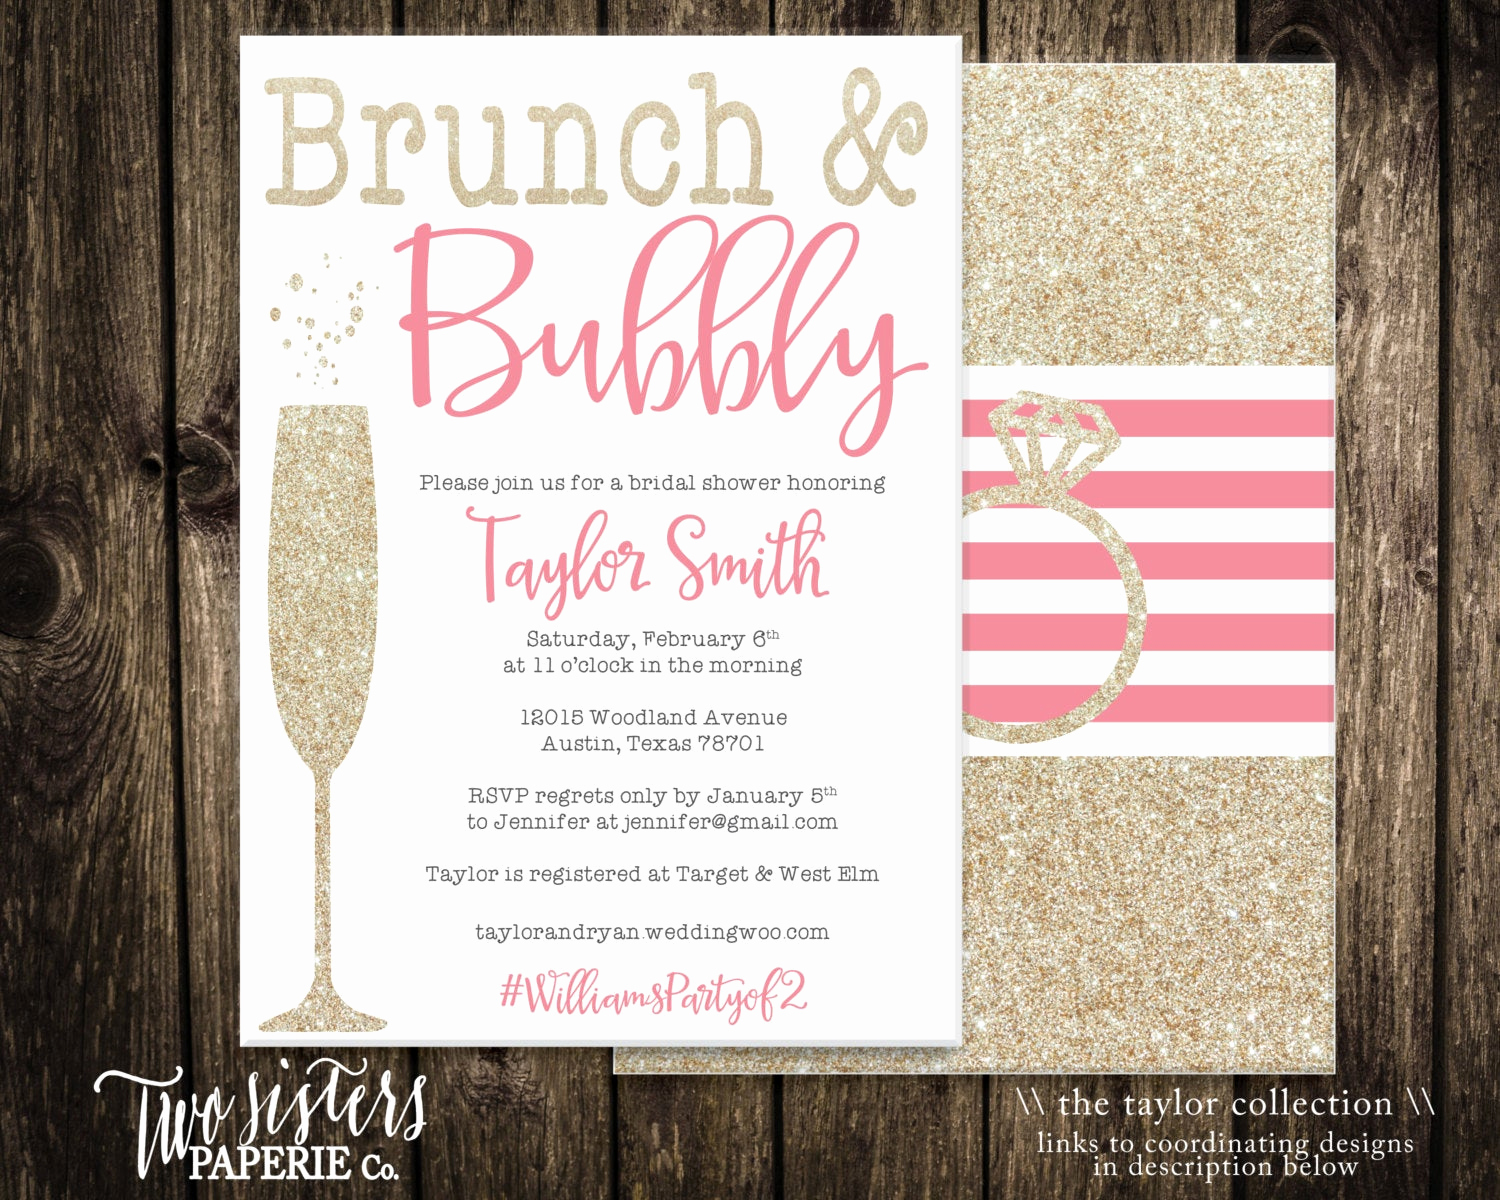 Bridal Shower Invitation Wording Luxury Brunch and Bubbly Bridal Shower Invitation by